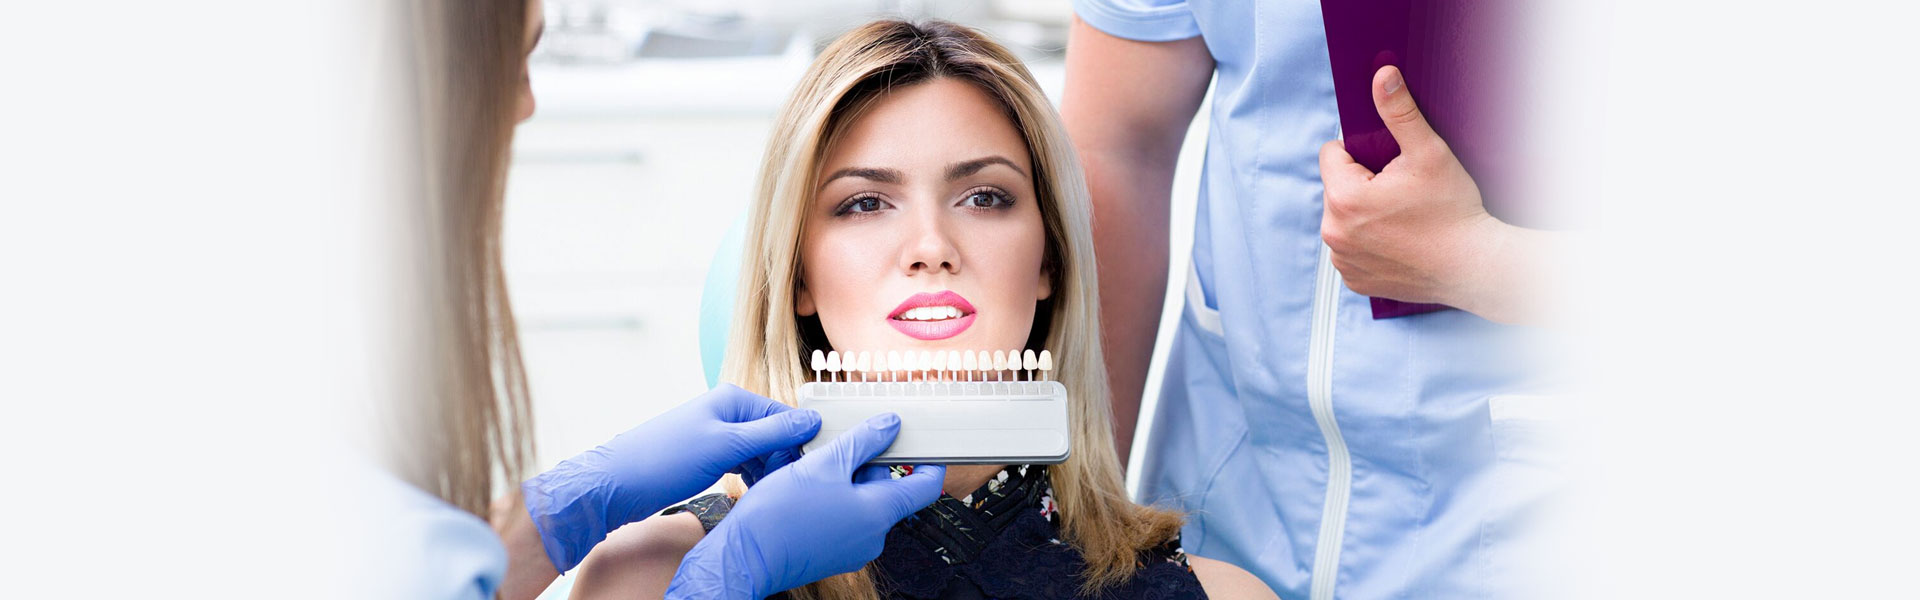 Dental Crowns To Improve the Appearance Of Teeth